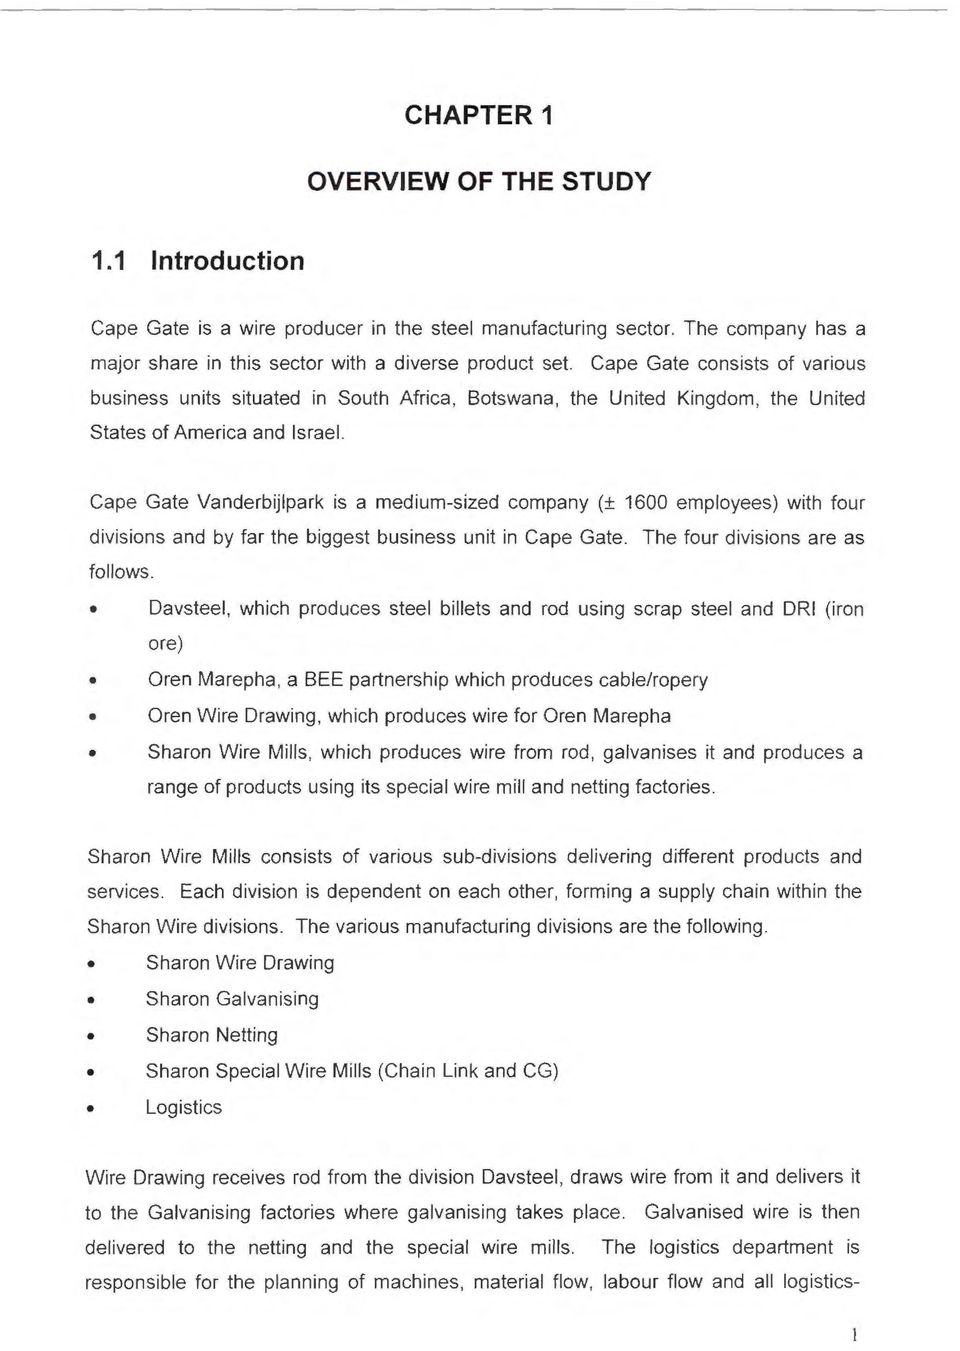 Cape Gate Vanderbijlpark is a medium-sized company (± 16 employees) with four divisions and by far the biggest business unit in Cape Gate. The four divisions are as follows.